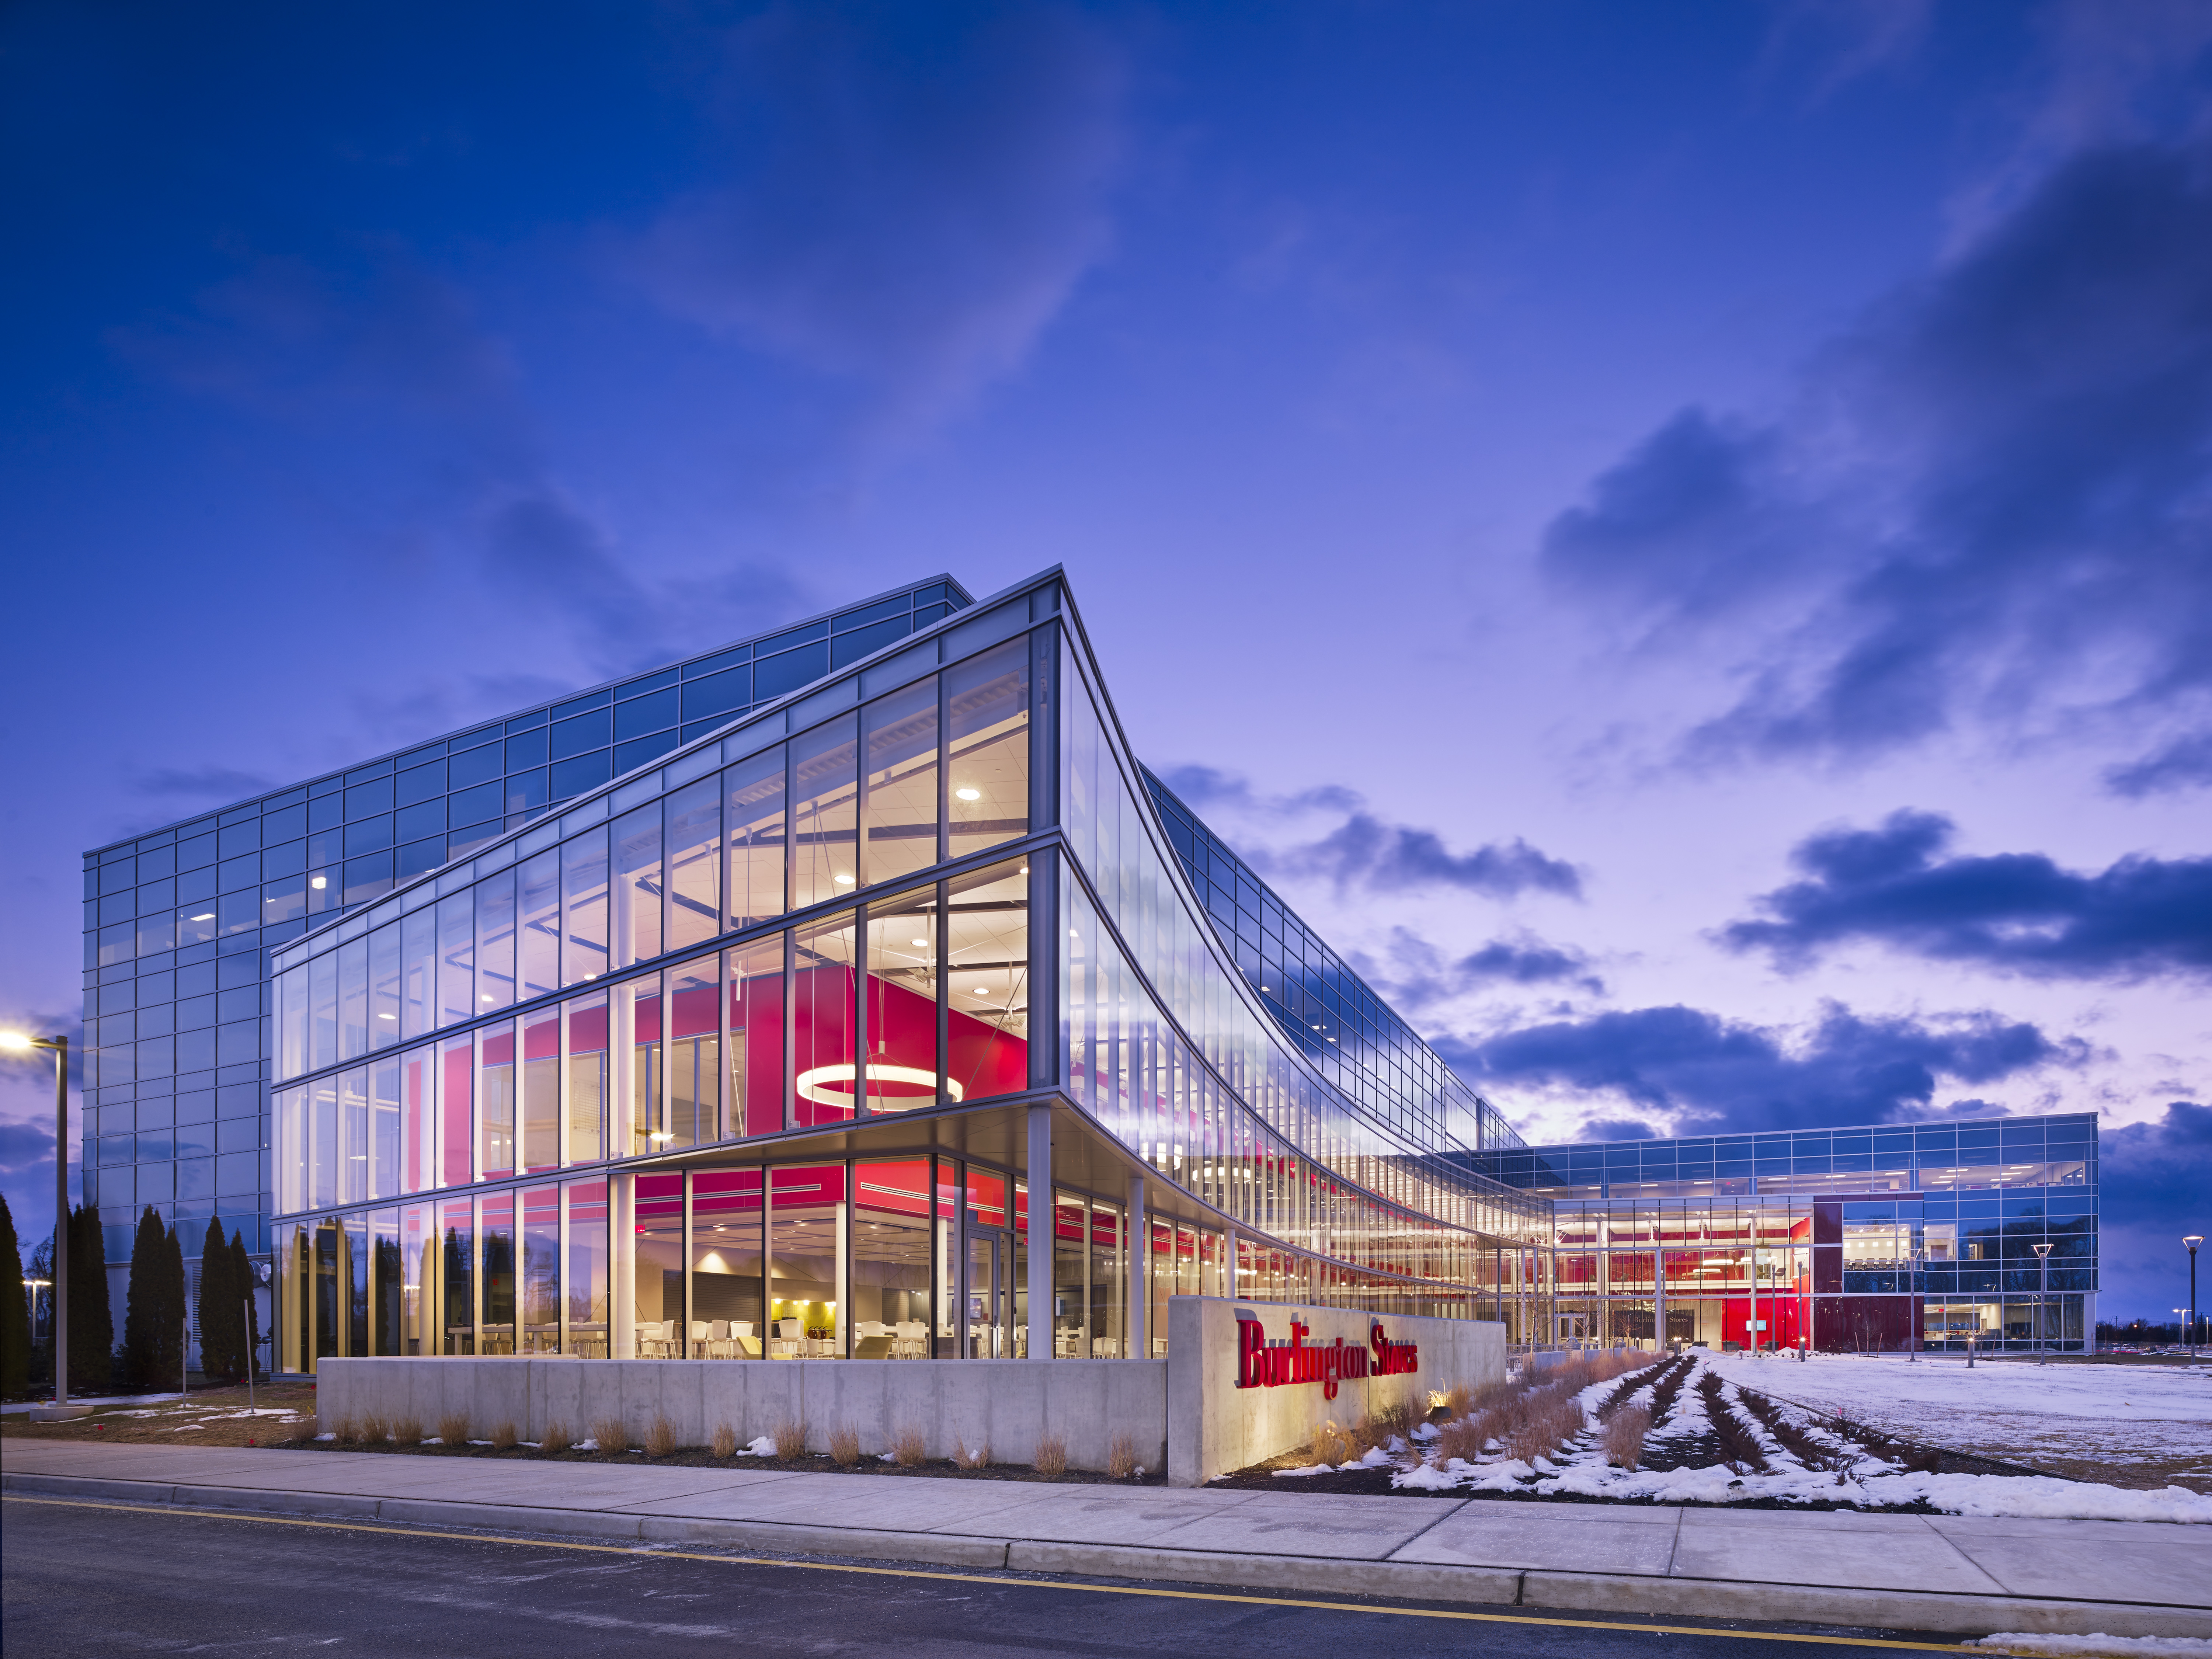 Green Brook Nj >> Burlington Stores Corporate Headquarters | Architect ...